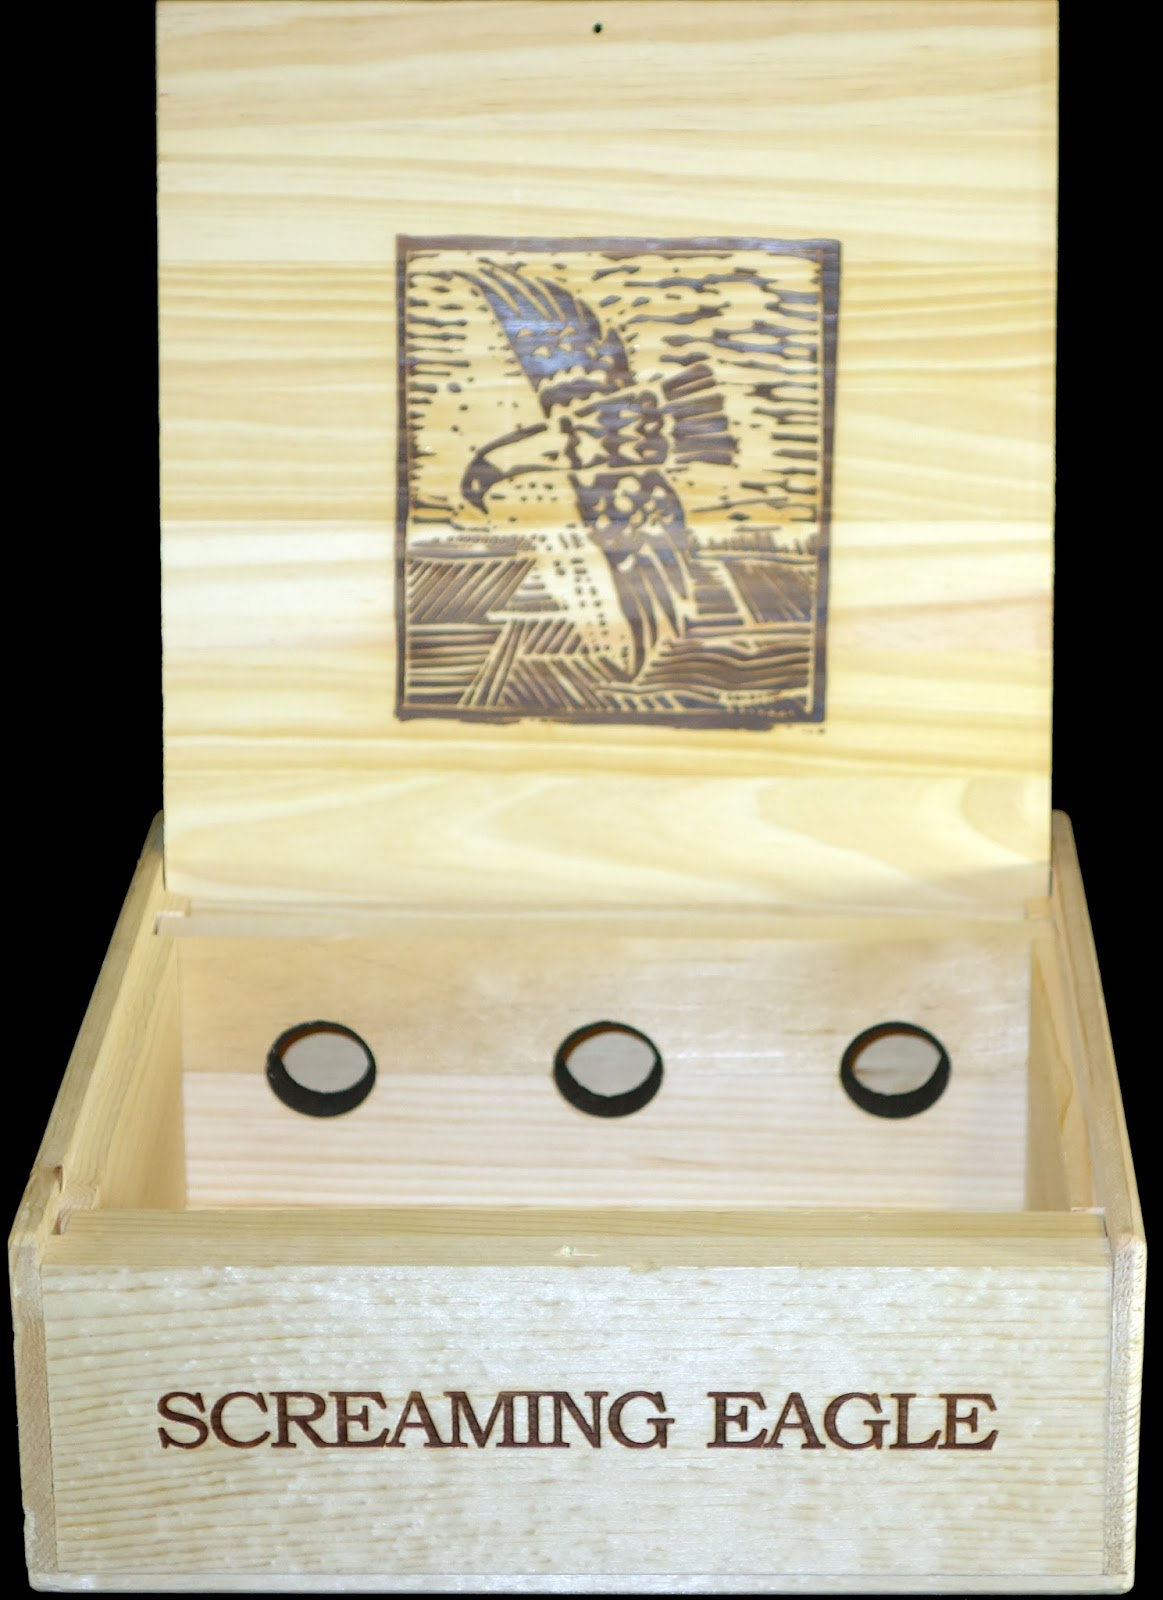 Wine Crates And Boxes Screaming Eagle Wooden Wine Box